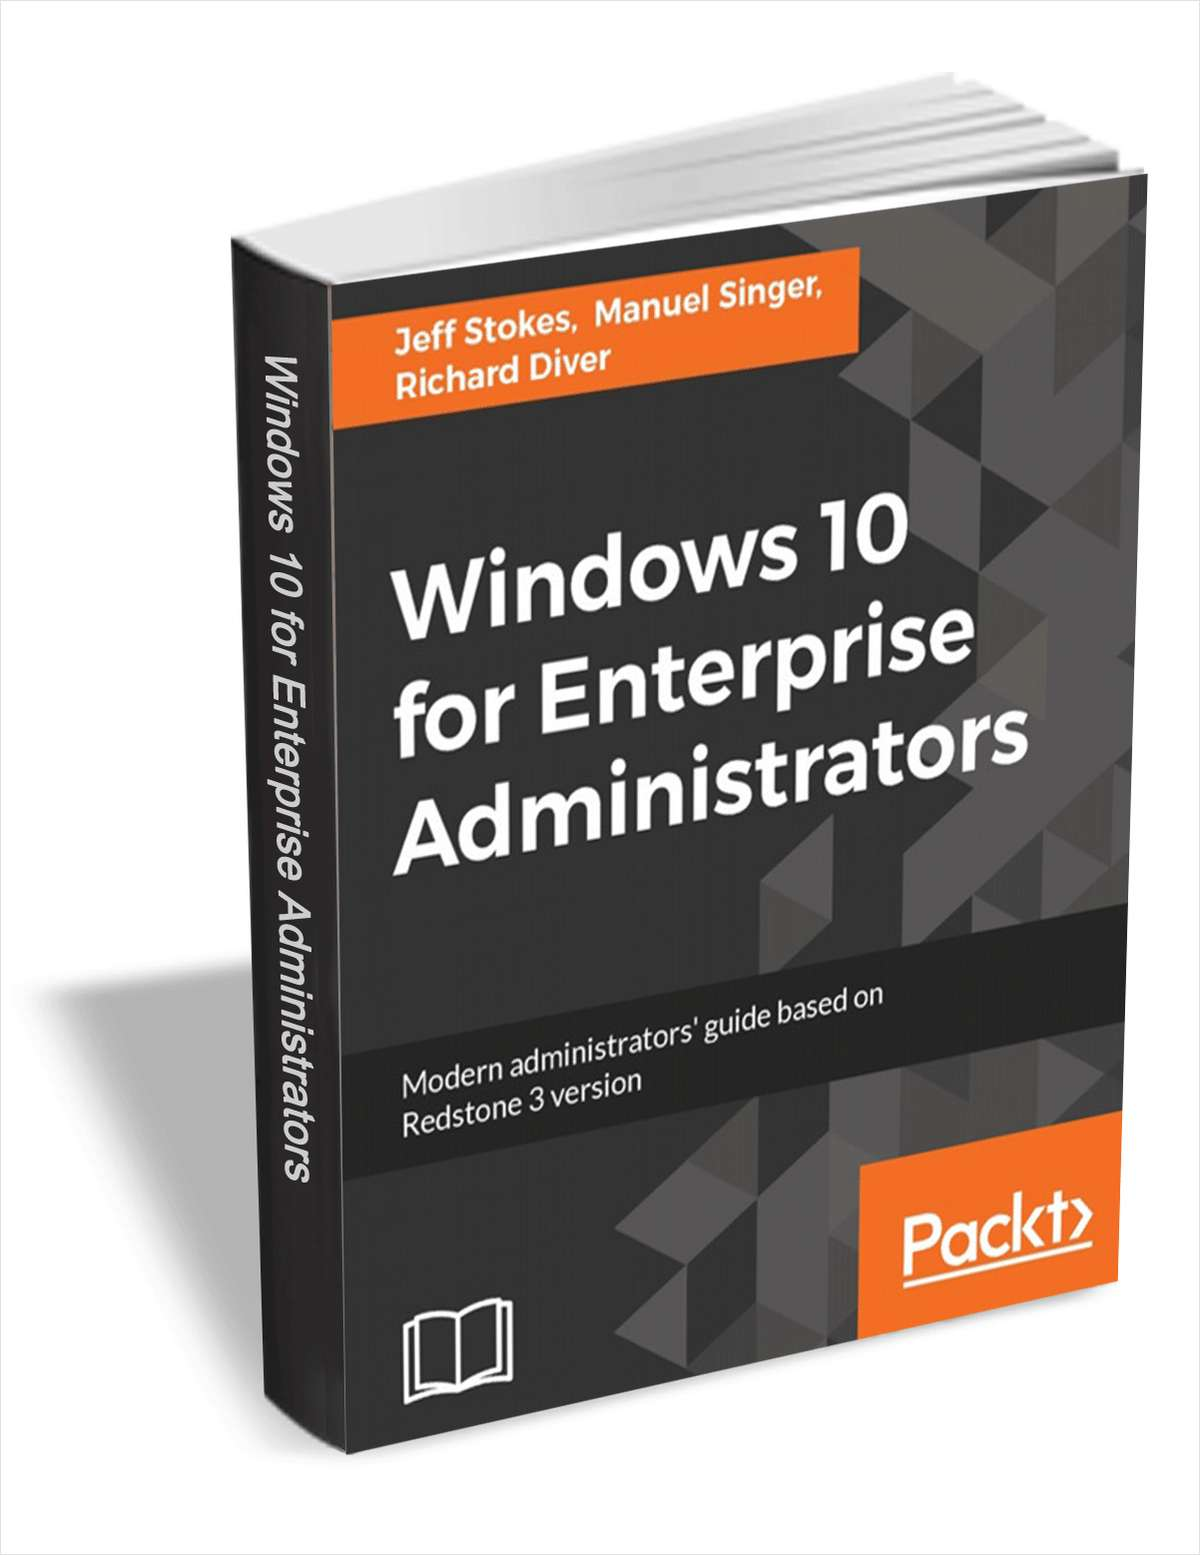 Windows 10 for Enterprise Administrators ($36 Value) FREE For a Limited Time